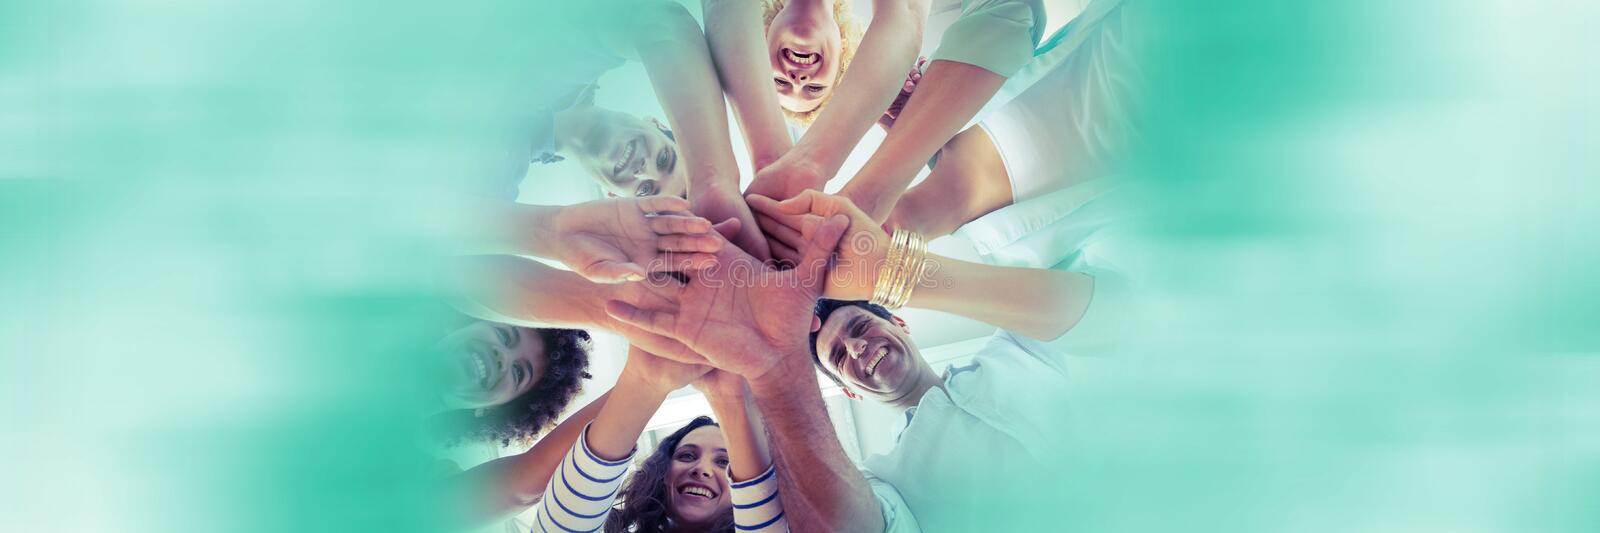 Low angle of creative team and putting hands together and blurry teal framing royalty free stock image